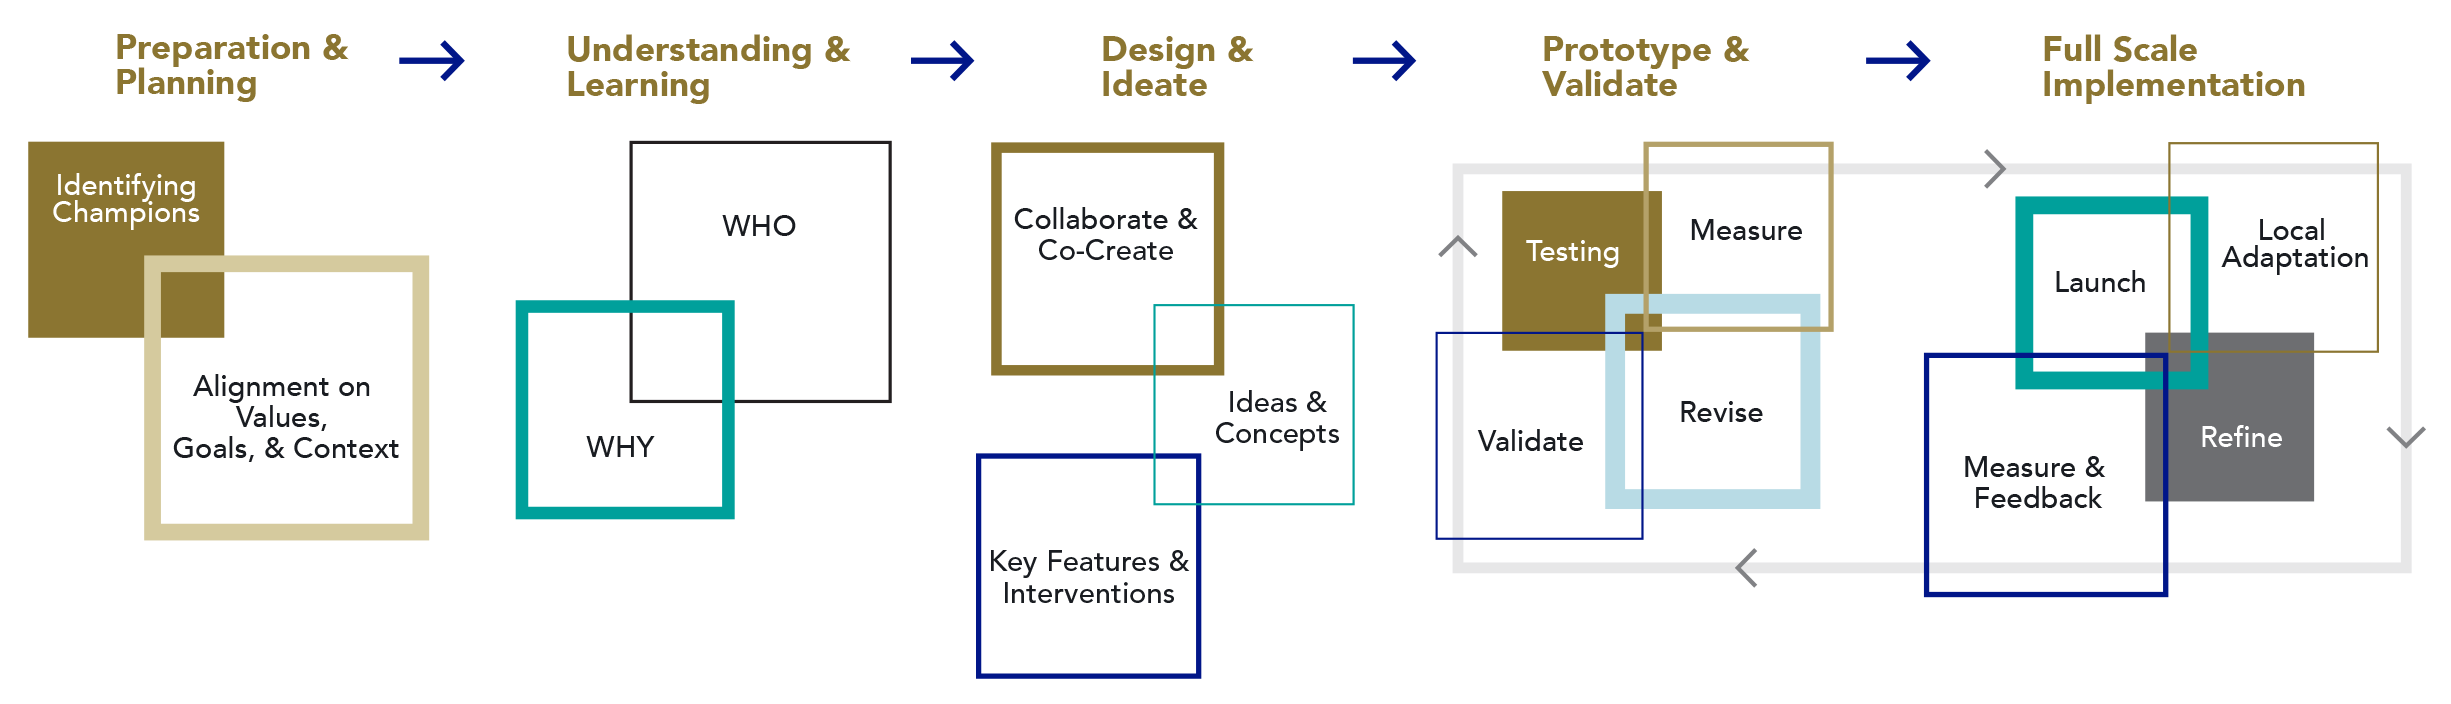 Powell & Associates Design Framework, 2018